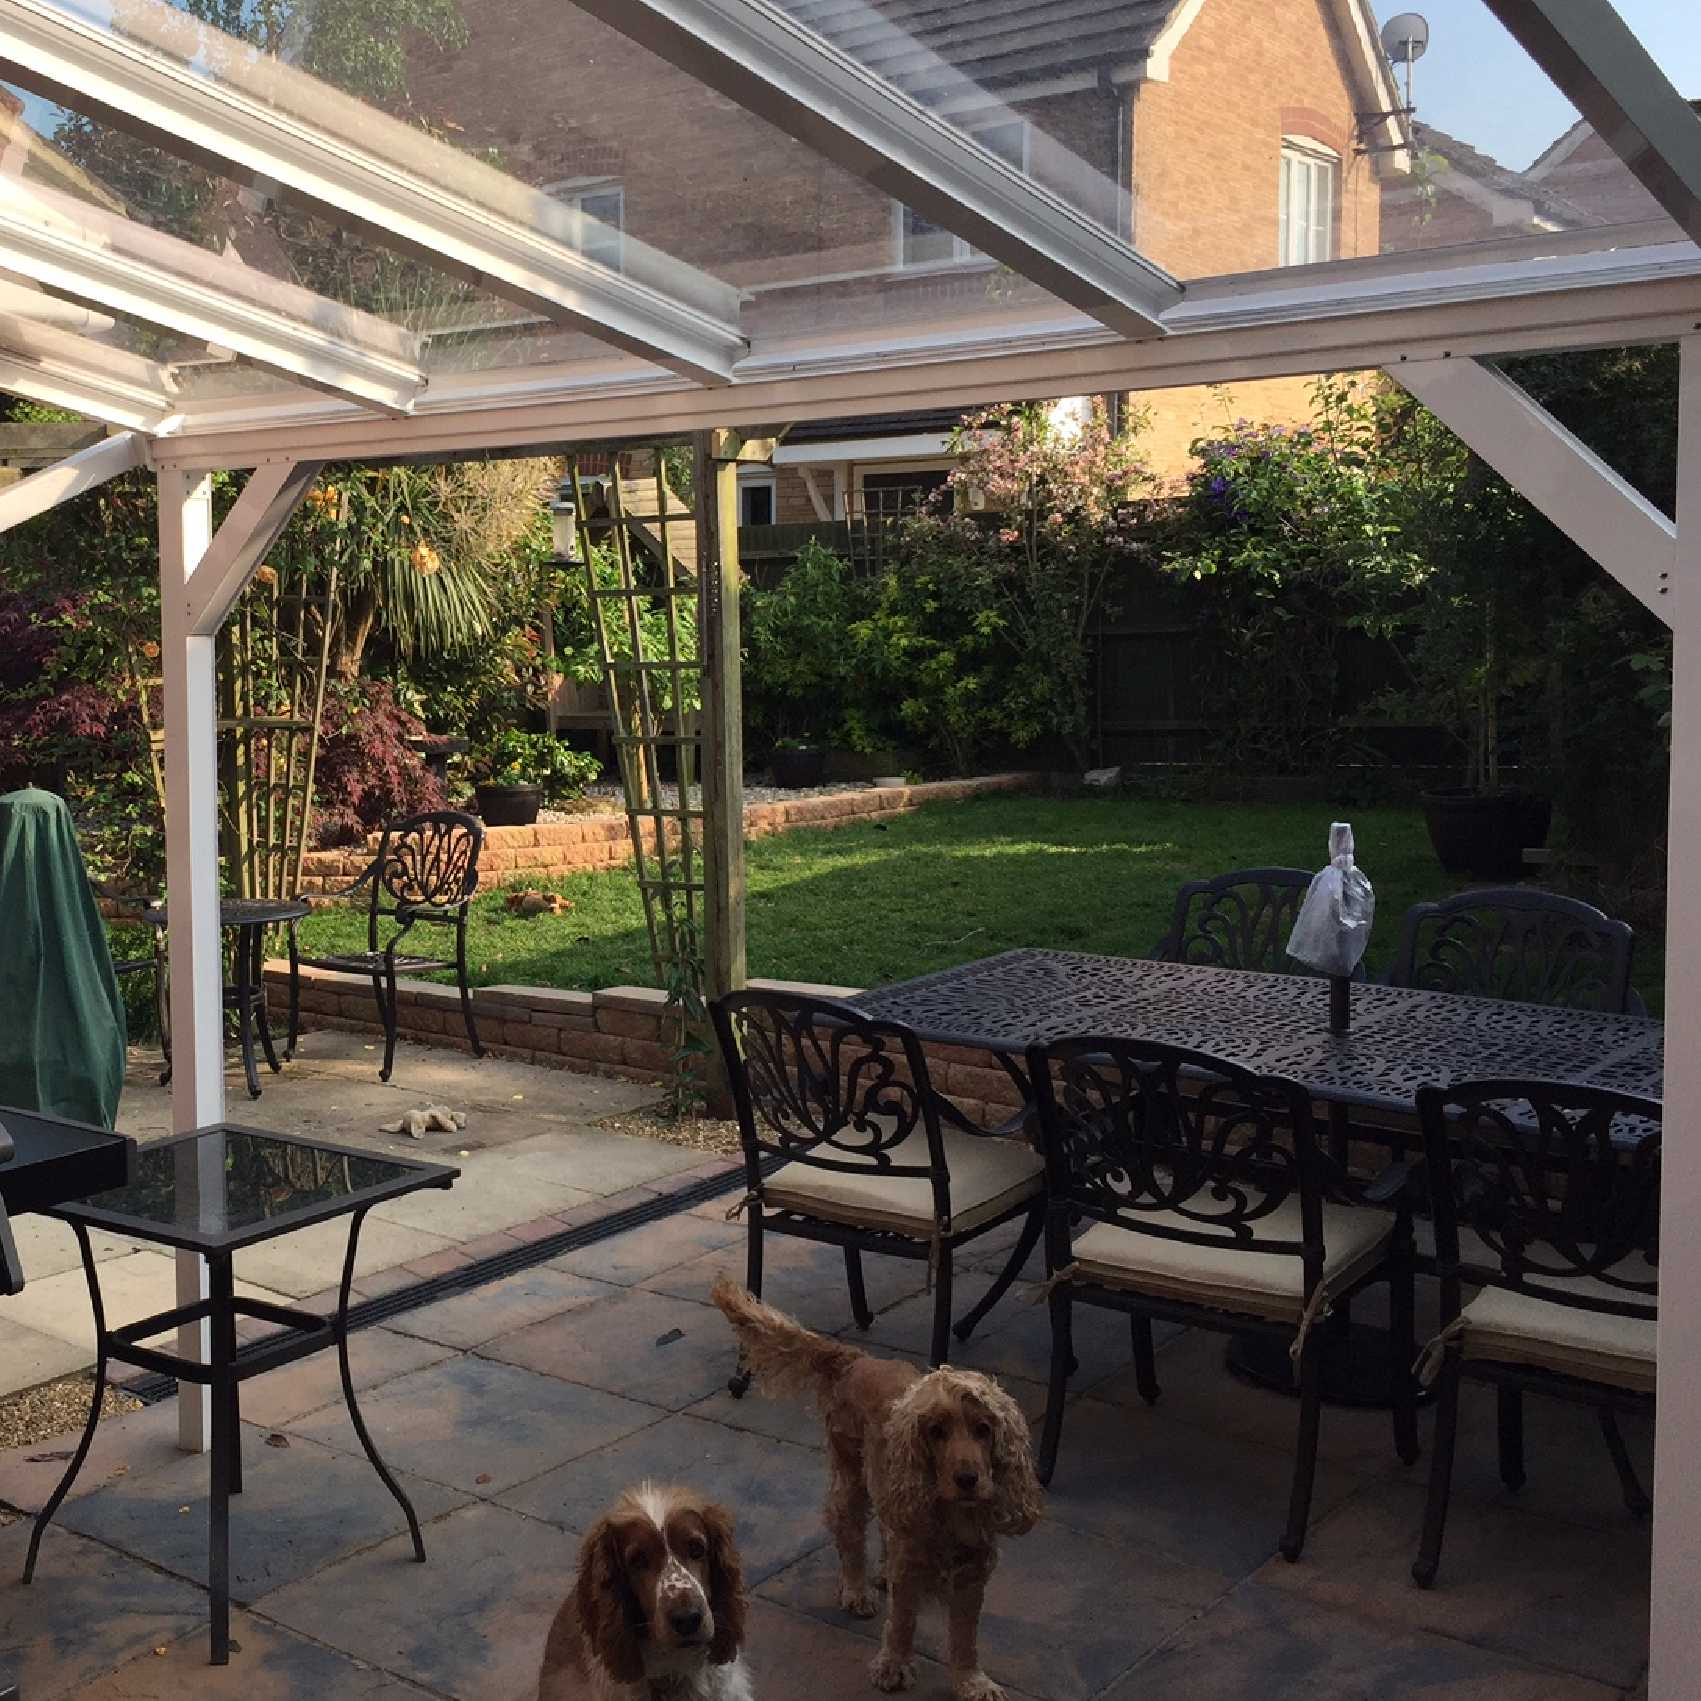 Affordable Omega Smart White Lean-To Canopy with 6mm Glass Clear Plate Polycarbonate Glazing - 8.4m (W) x 2.5m (P), (4) Supporting Posts